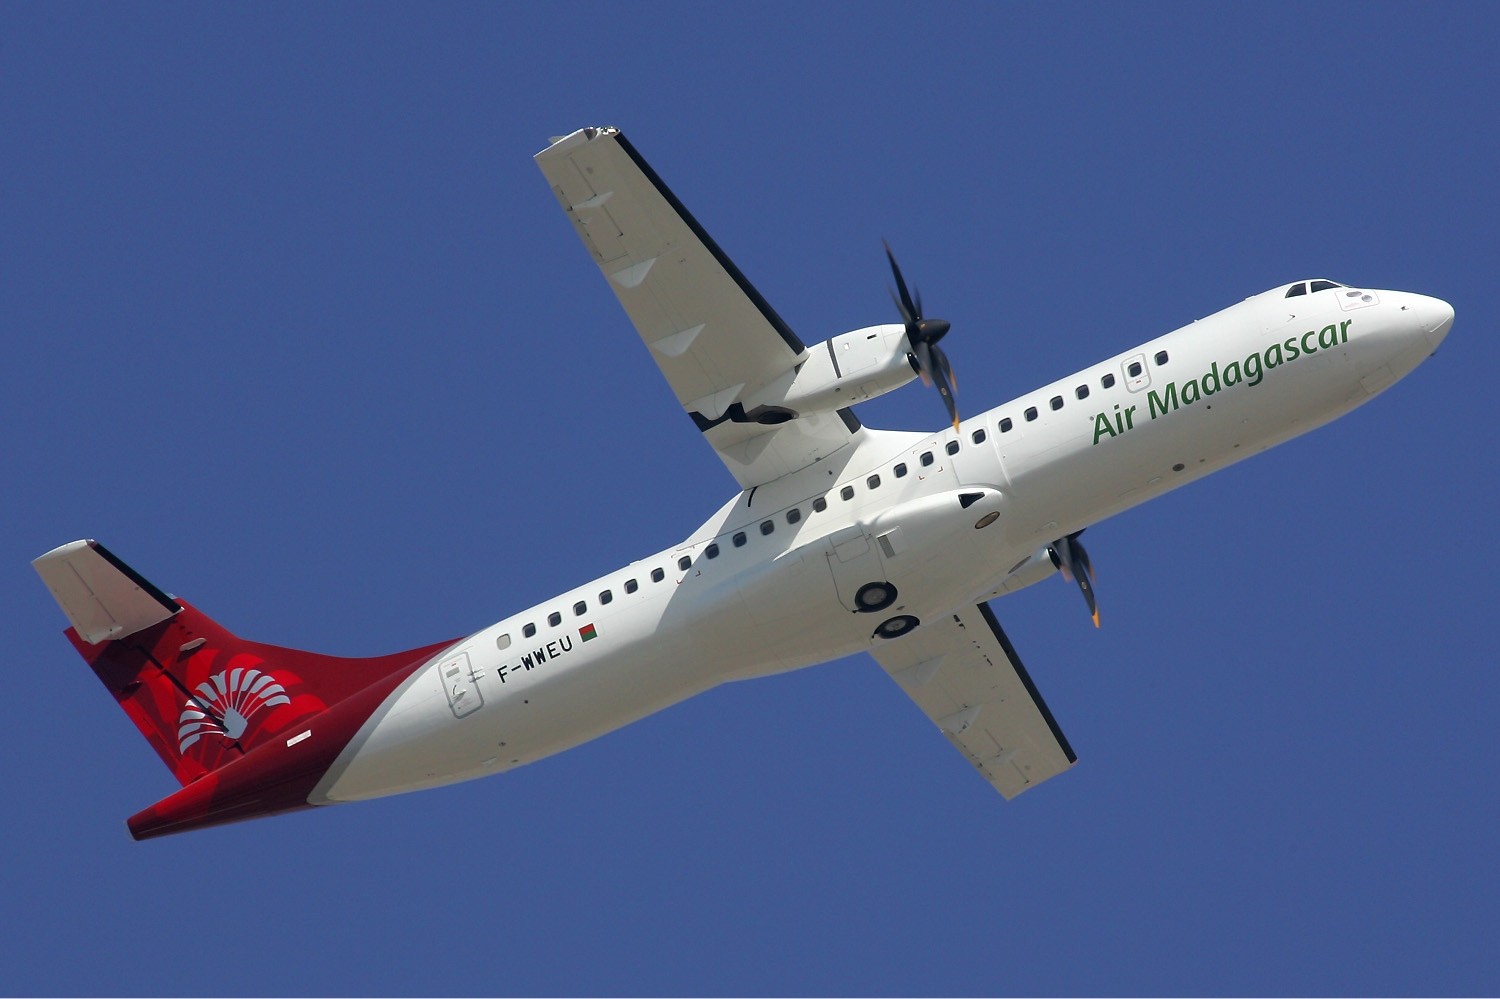 Air Madagascar ATR 72